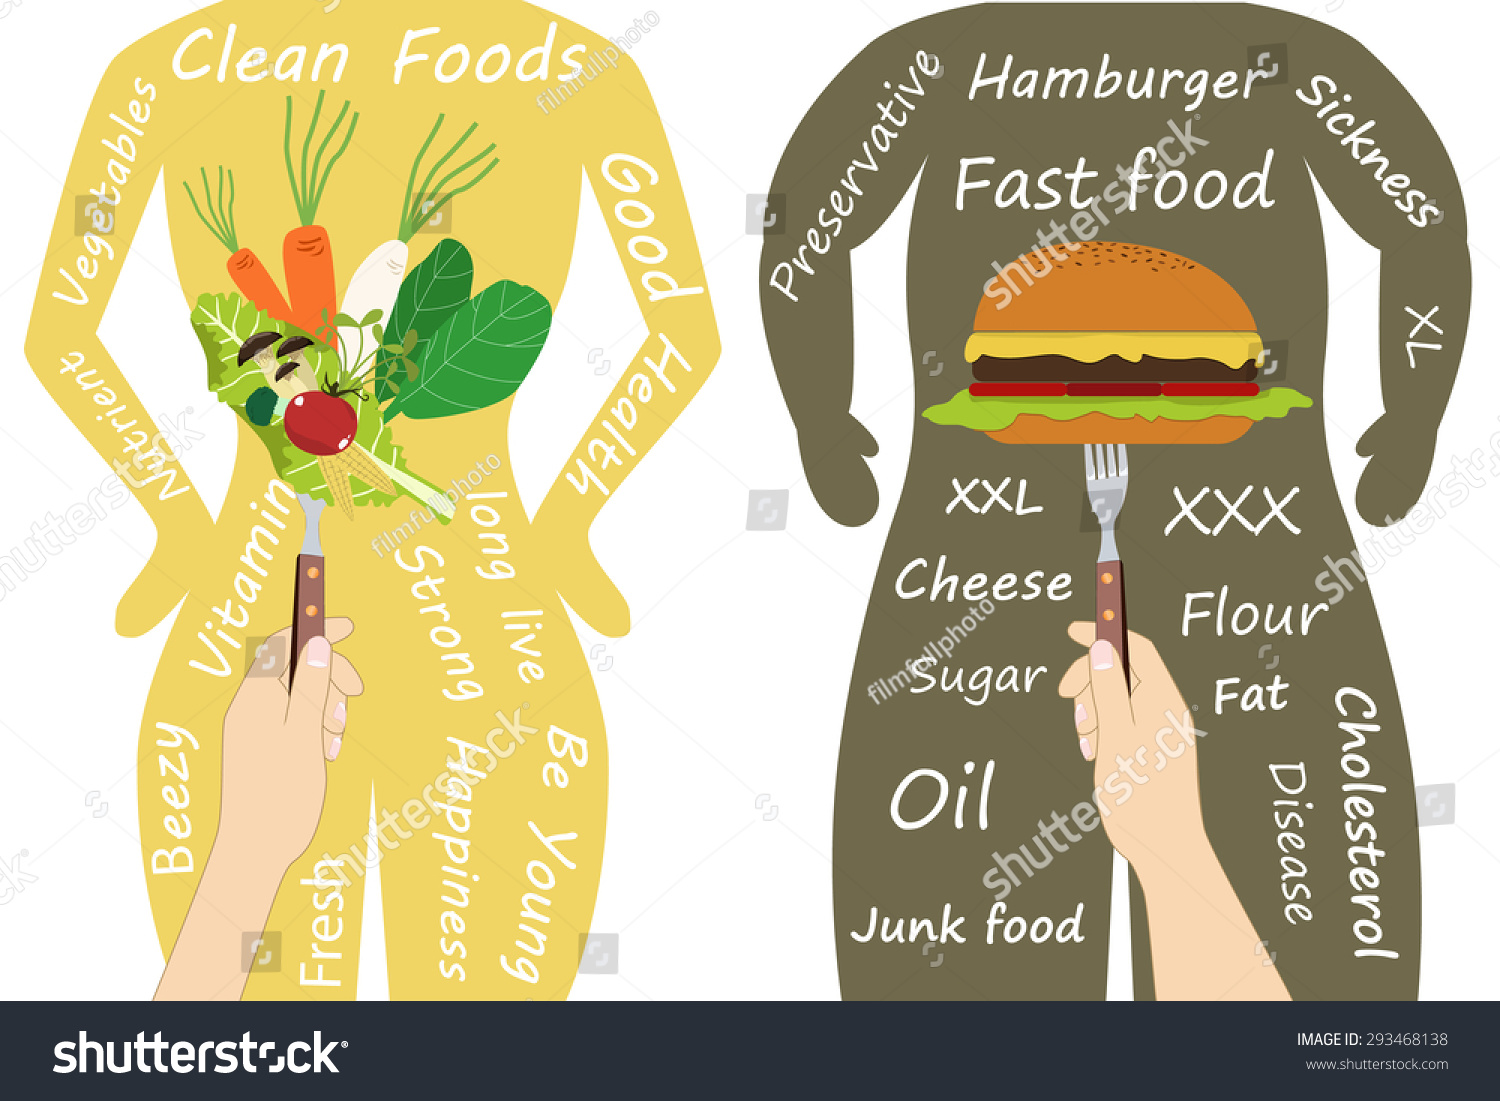 Fat Human Fast Food Slim Human Stock Vector 293468138 ...